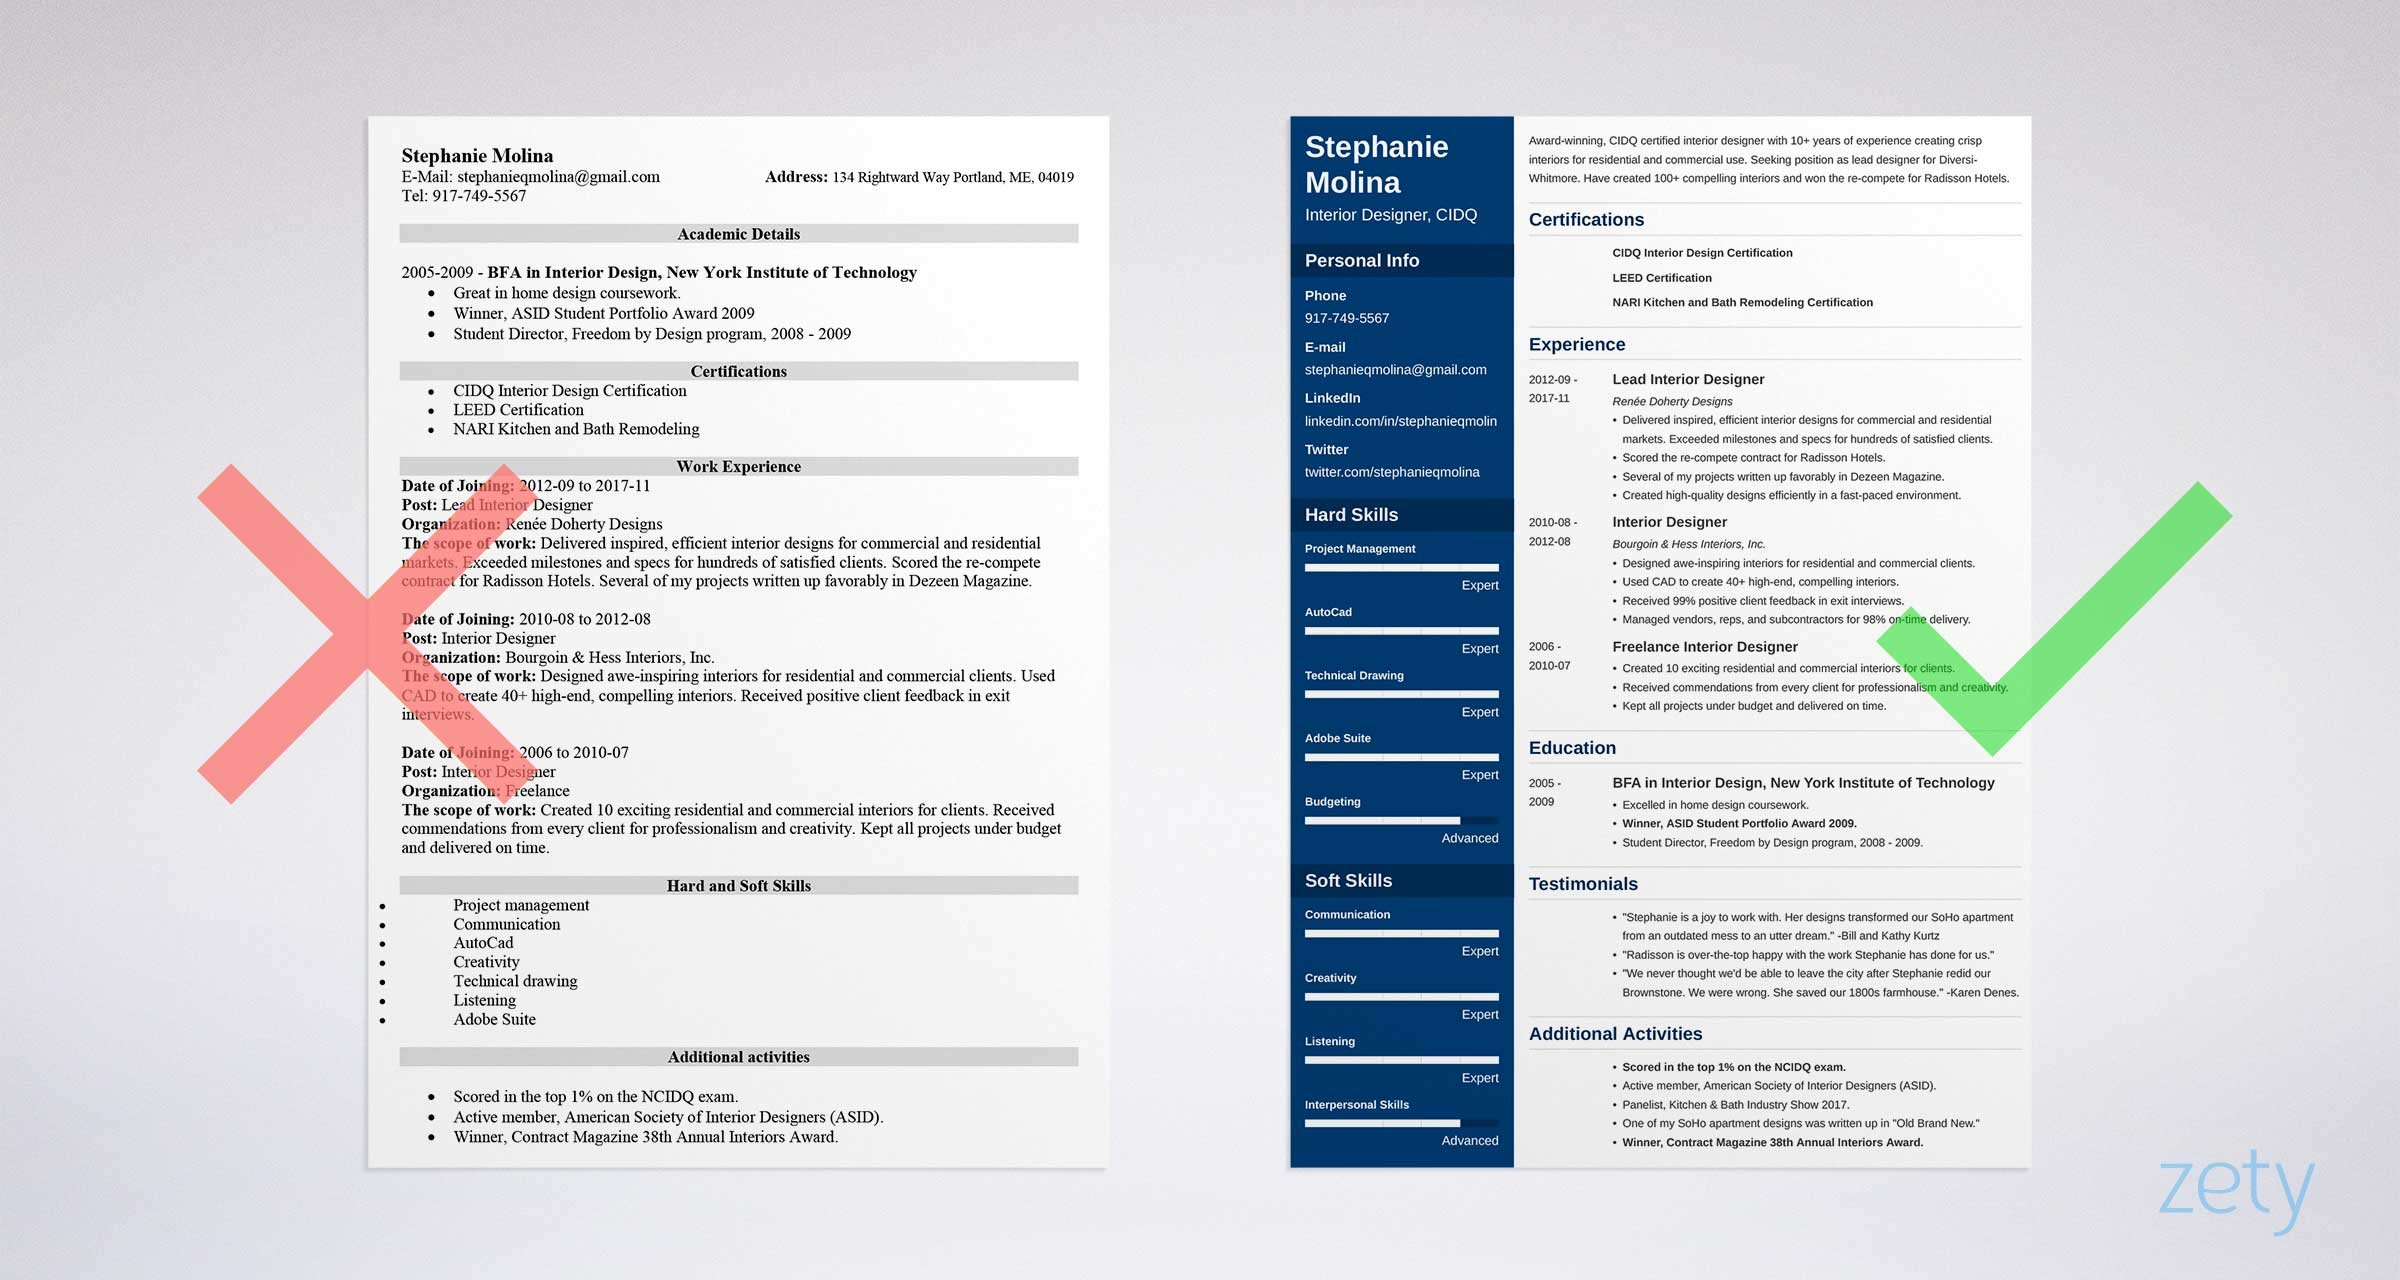 Free Resume Templates 17 Free CV Templates To Download & Use